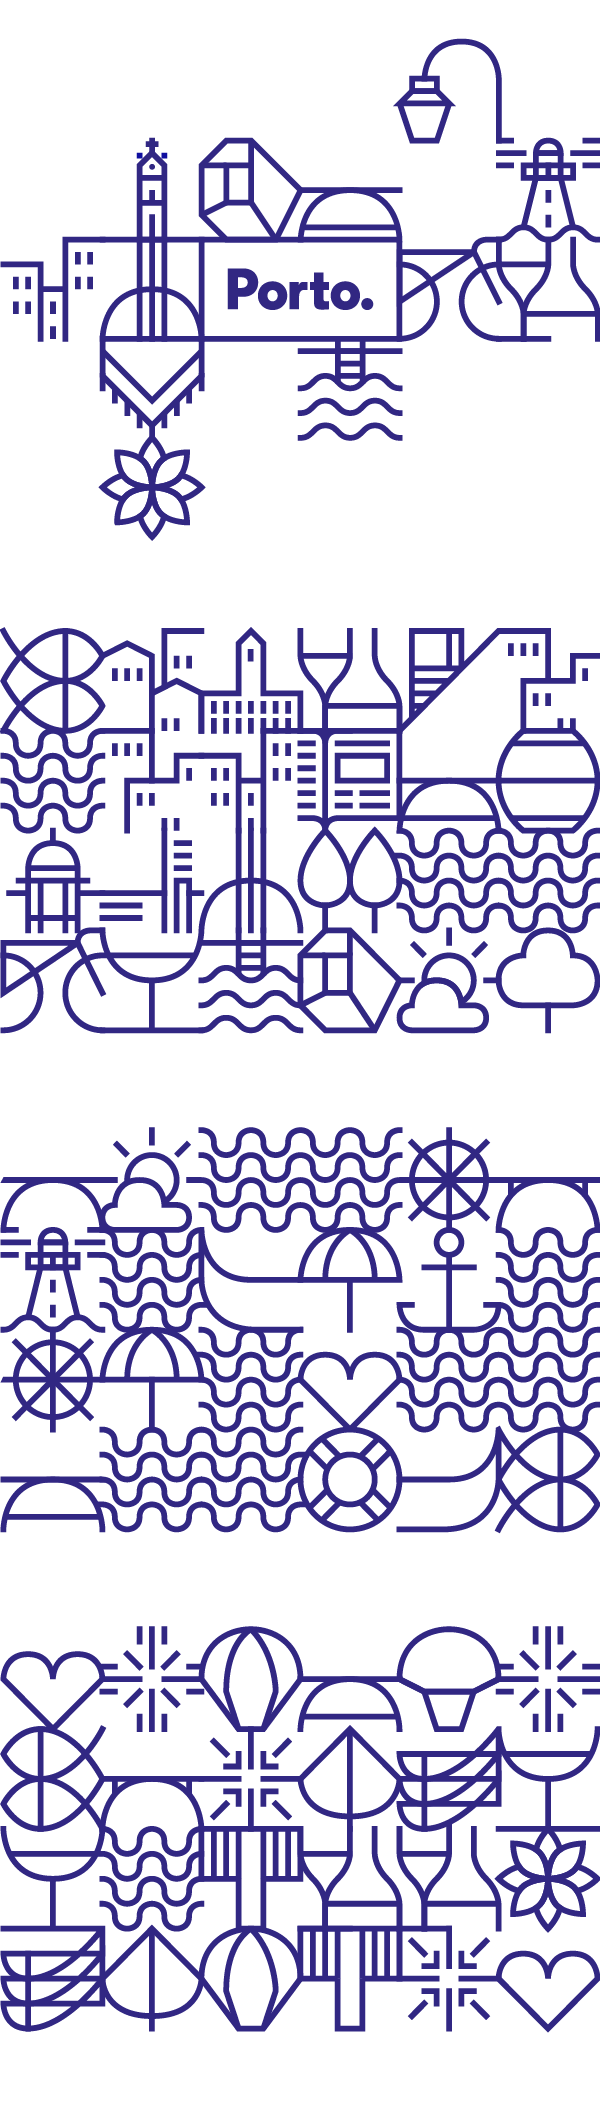 New identity for the city of Porto on